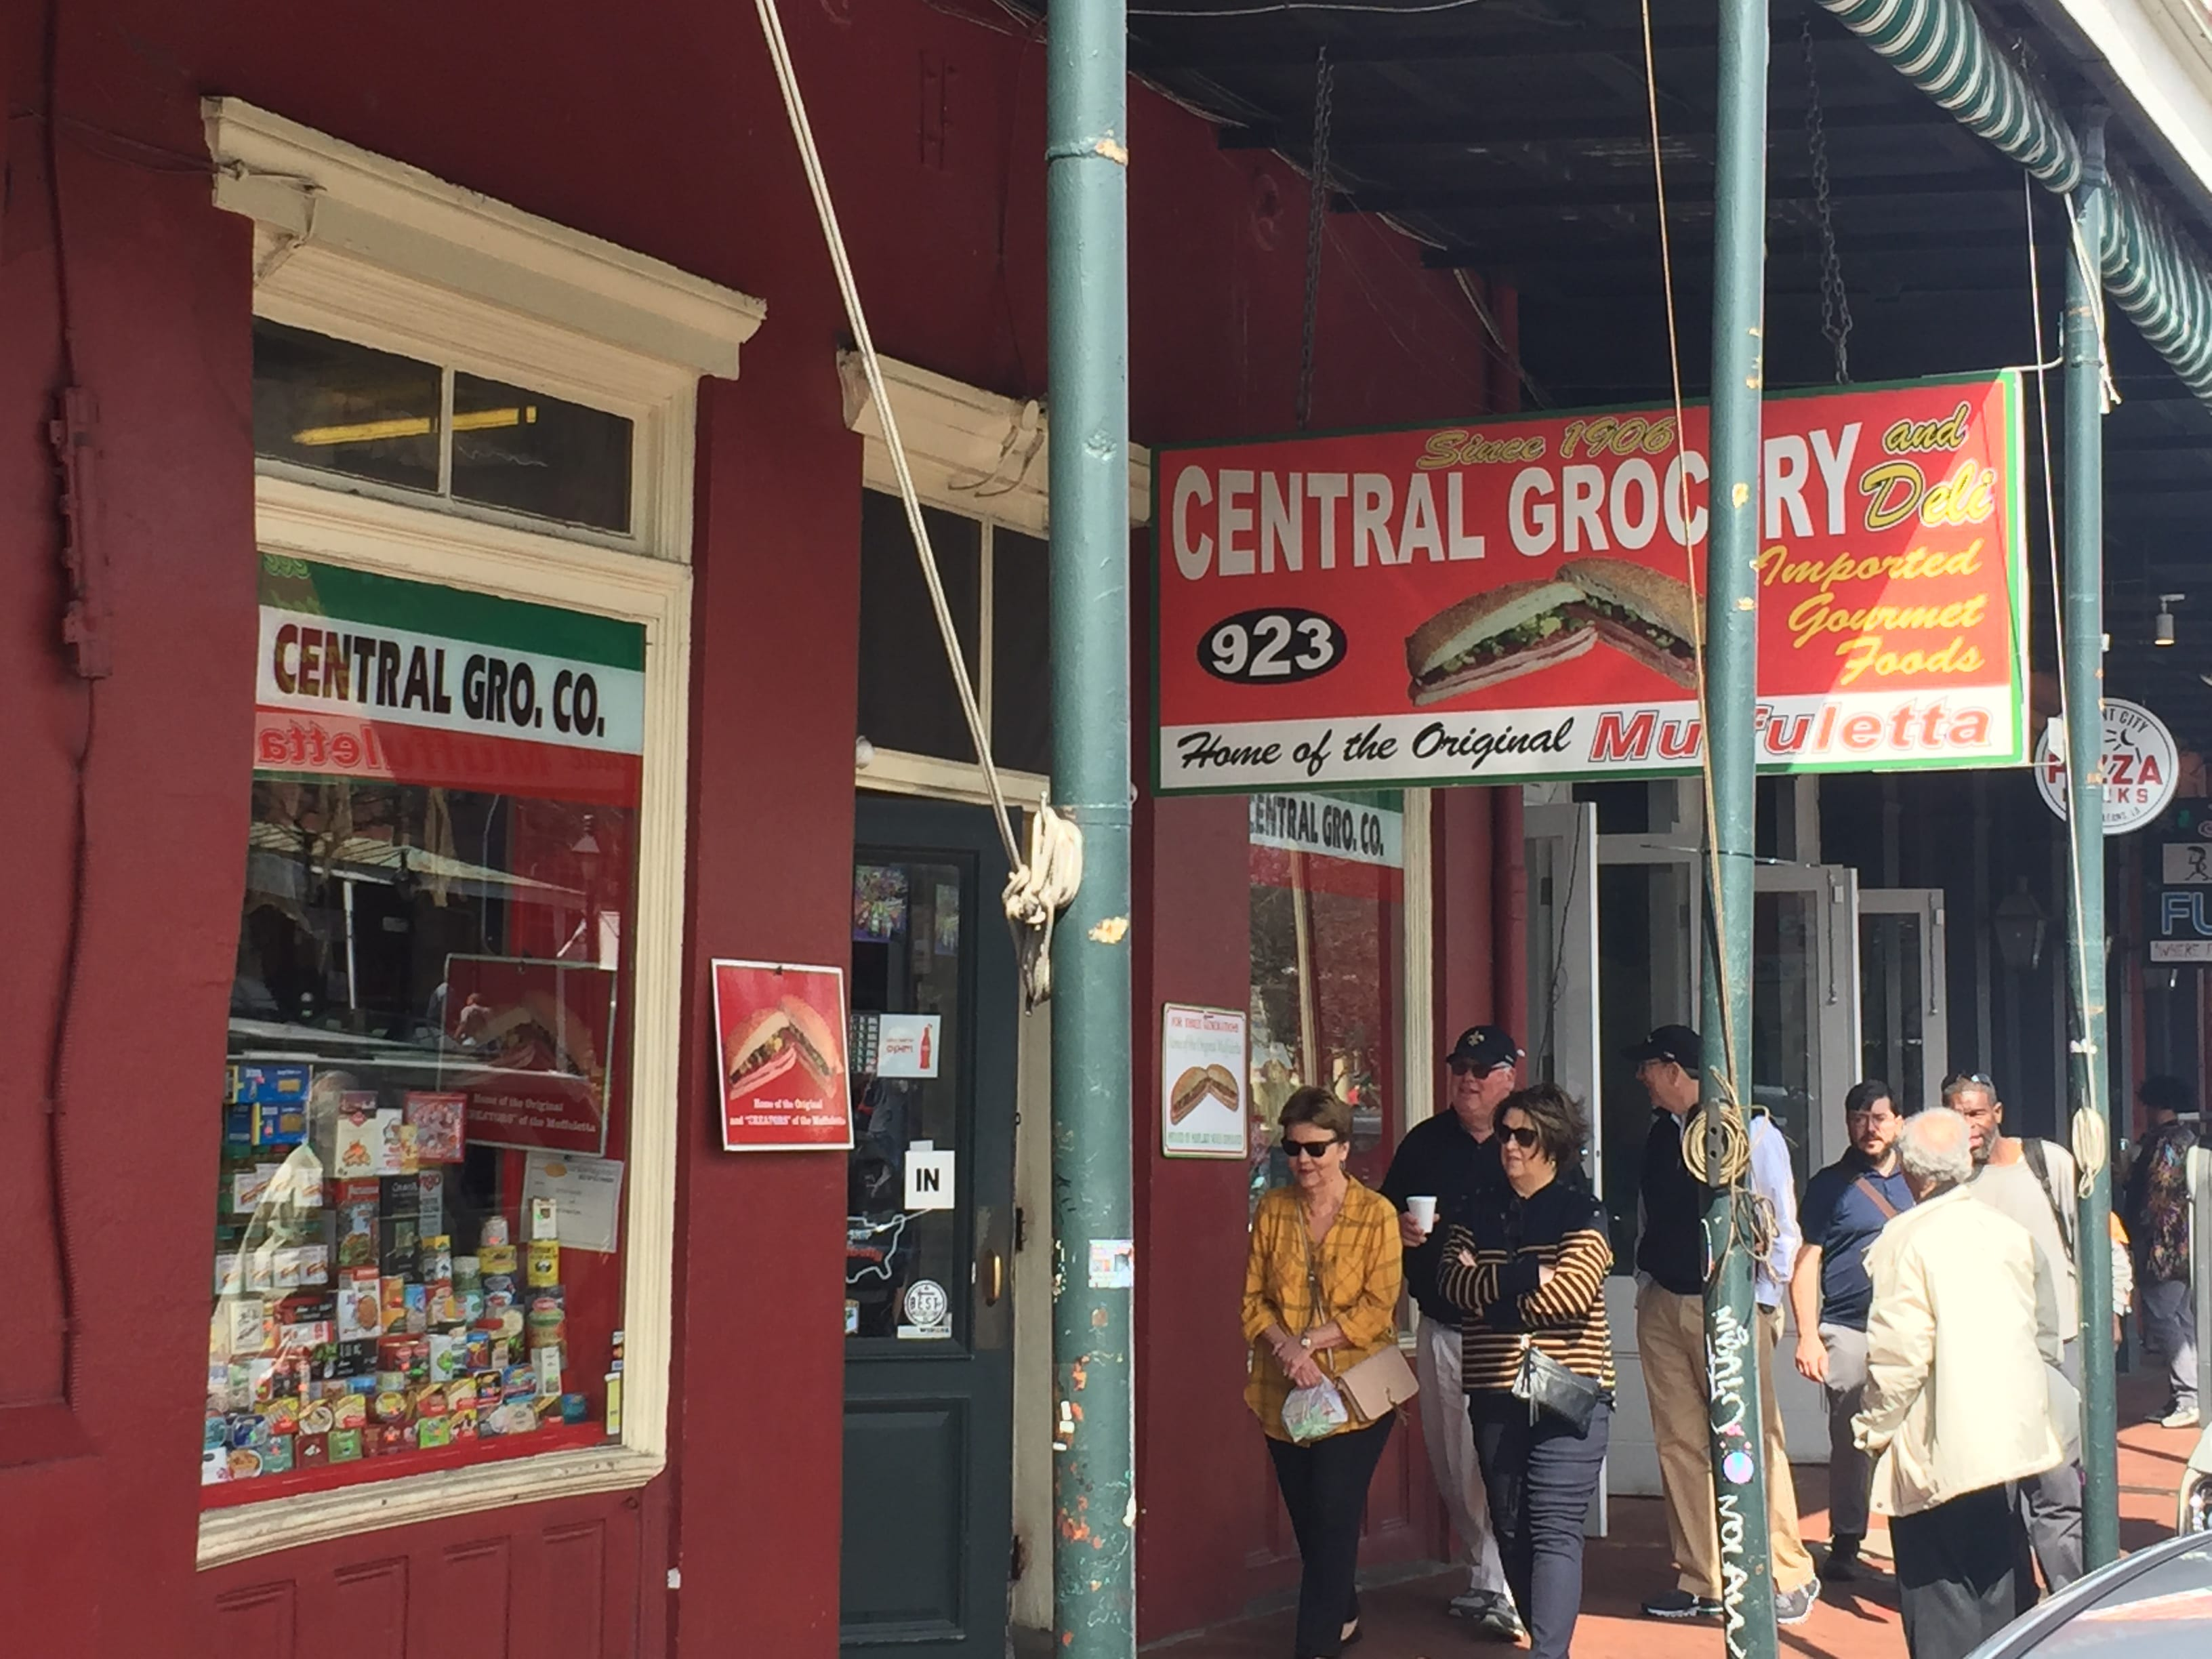 Central Grocery Nuova Orleans! Explore New Orleans' culturally rich Italian heritage. Take a walk with The Savvy Native. A private small group tour by appointment.